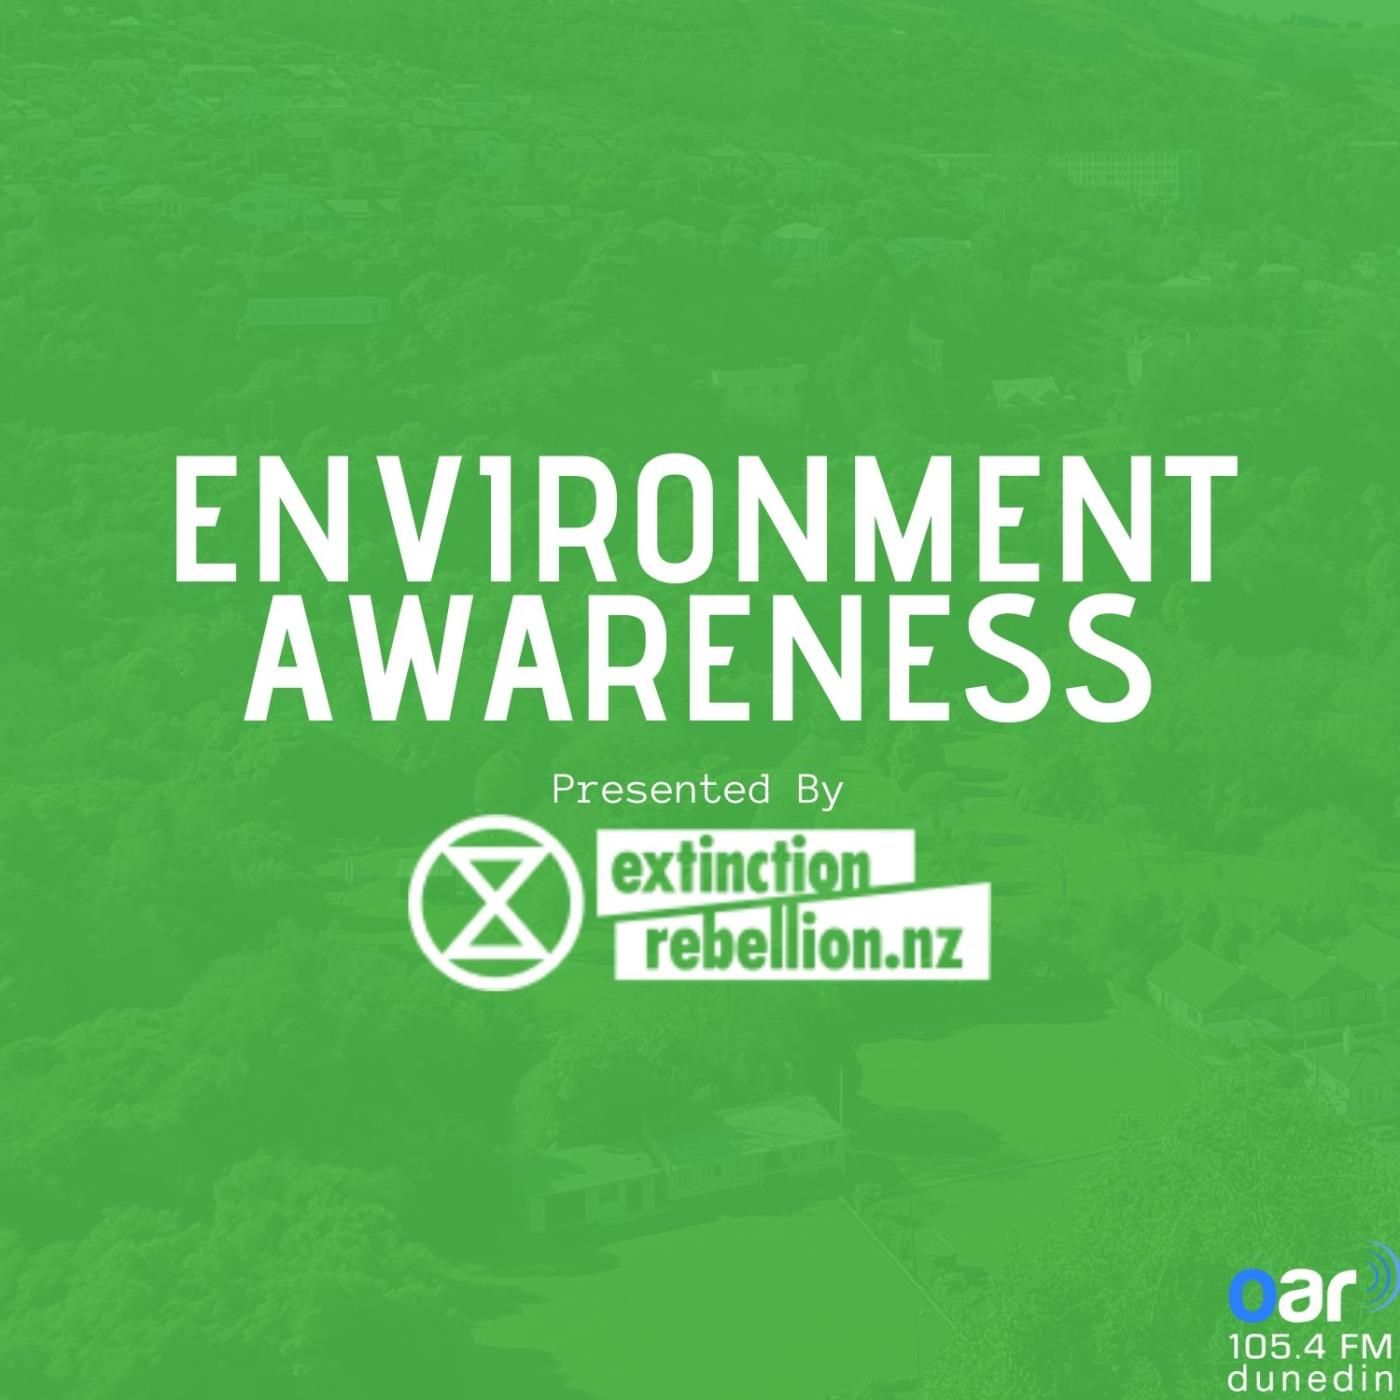 Environment Awareness - 06-08-2020 - Show 44 - Alternative Aotearoa interview with Sonja